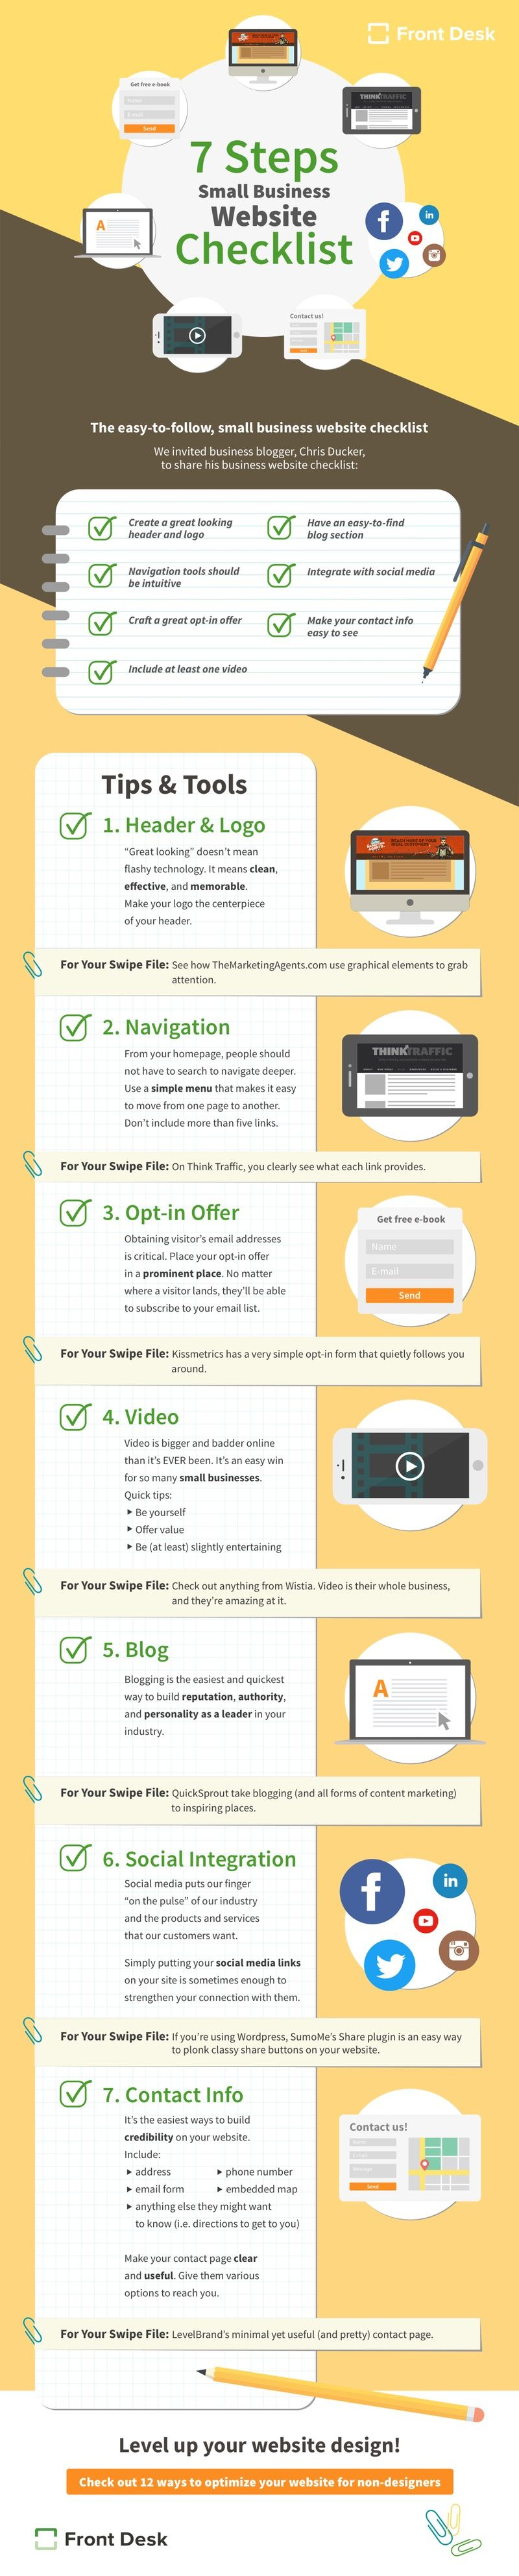 7 Step Small Business Website Checklist #Infographic